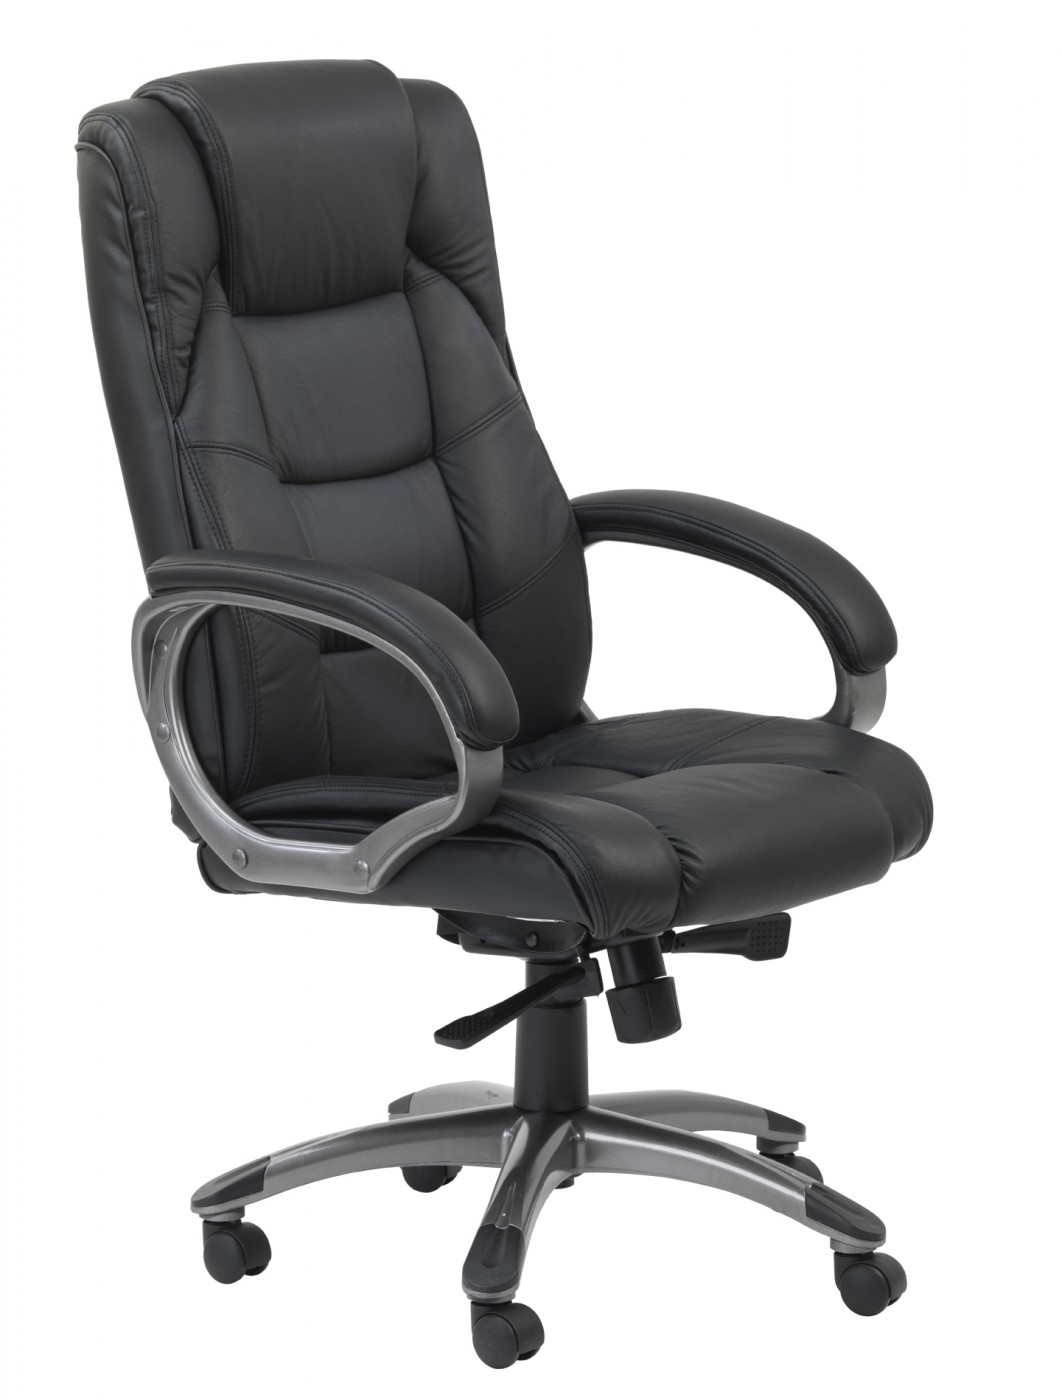 Executive Office Furniture: Executive Chair AOC6322-L